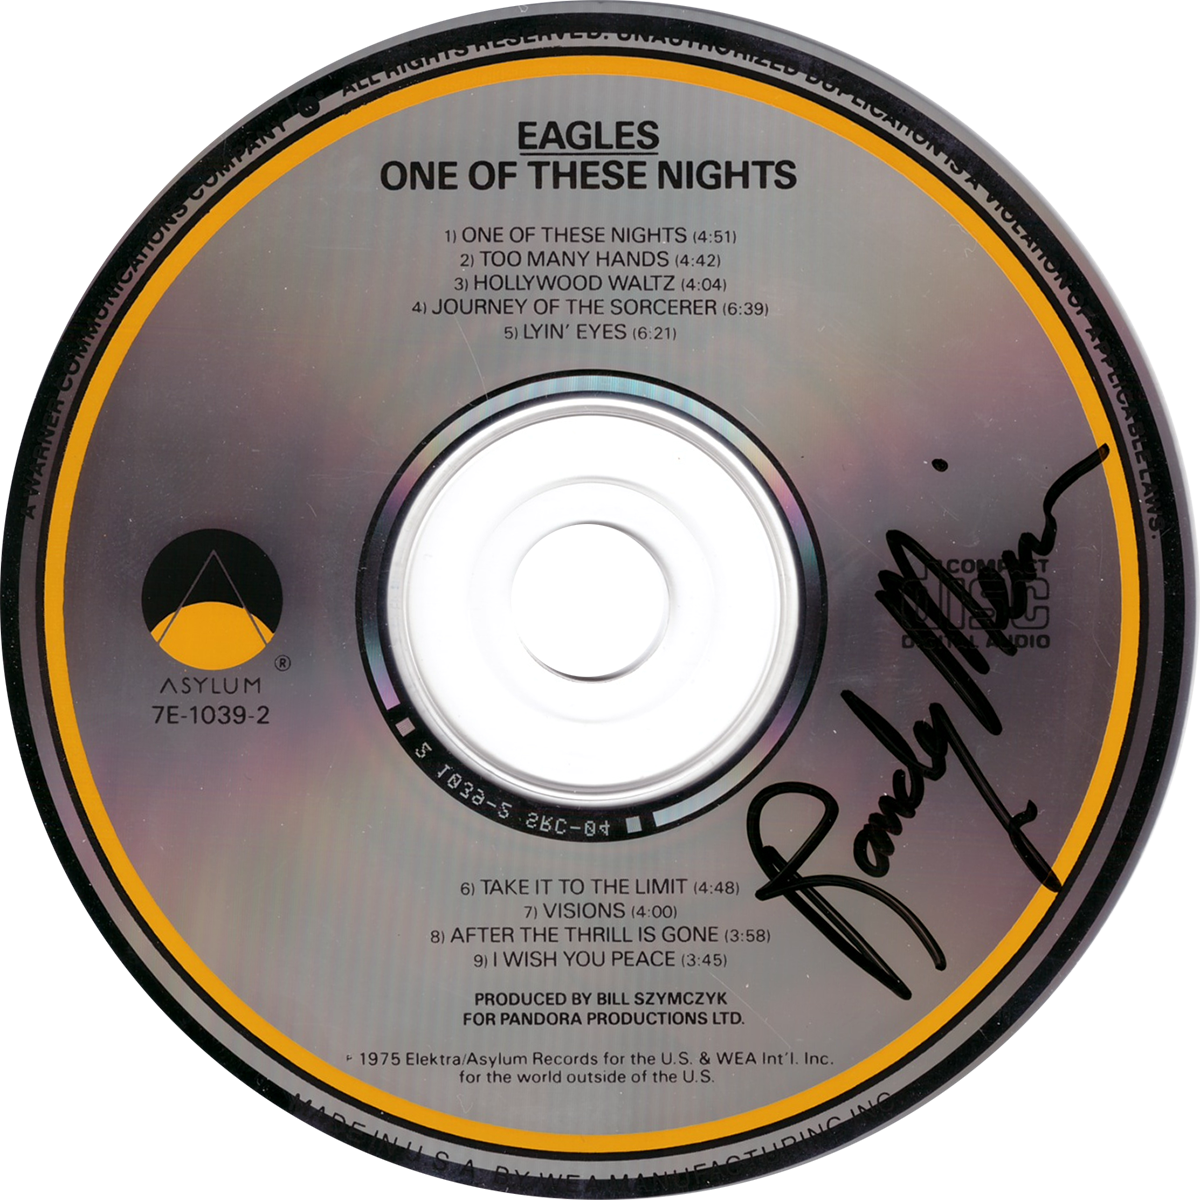 Randy Meisner CD - One of These Nights #2